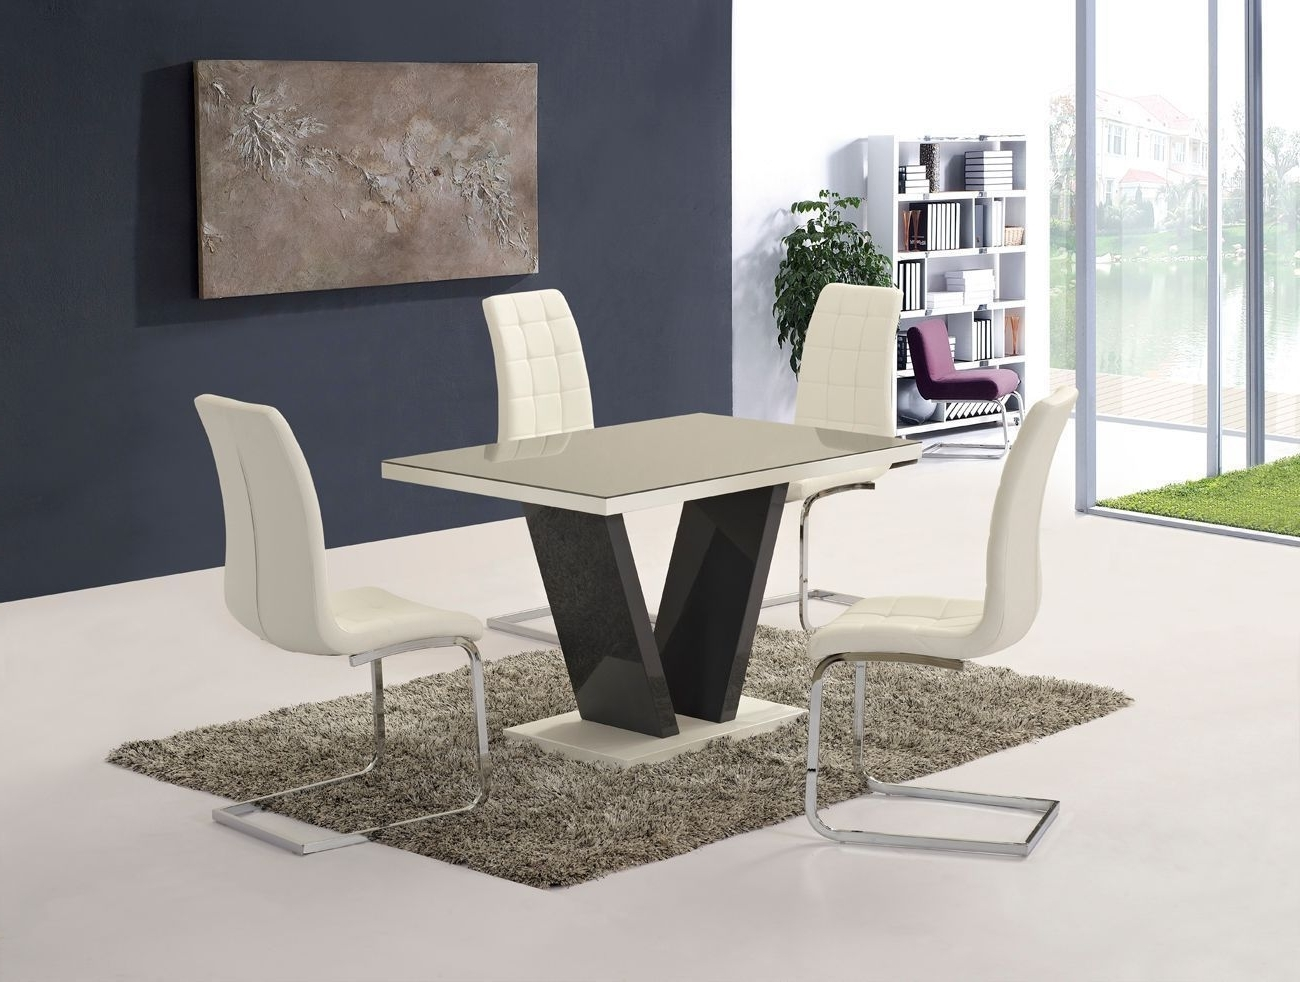 Grey High Gloss Glass Dining Table And 6 White Chairs  Homegenies With Regard To Most Up To Date Cream Gloss Dining Tables And Chairs (Gallery 16 of 25)